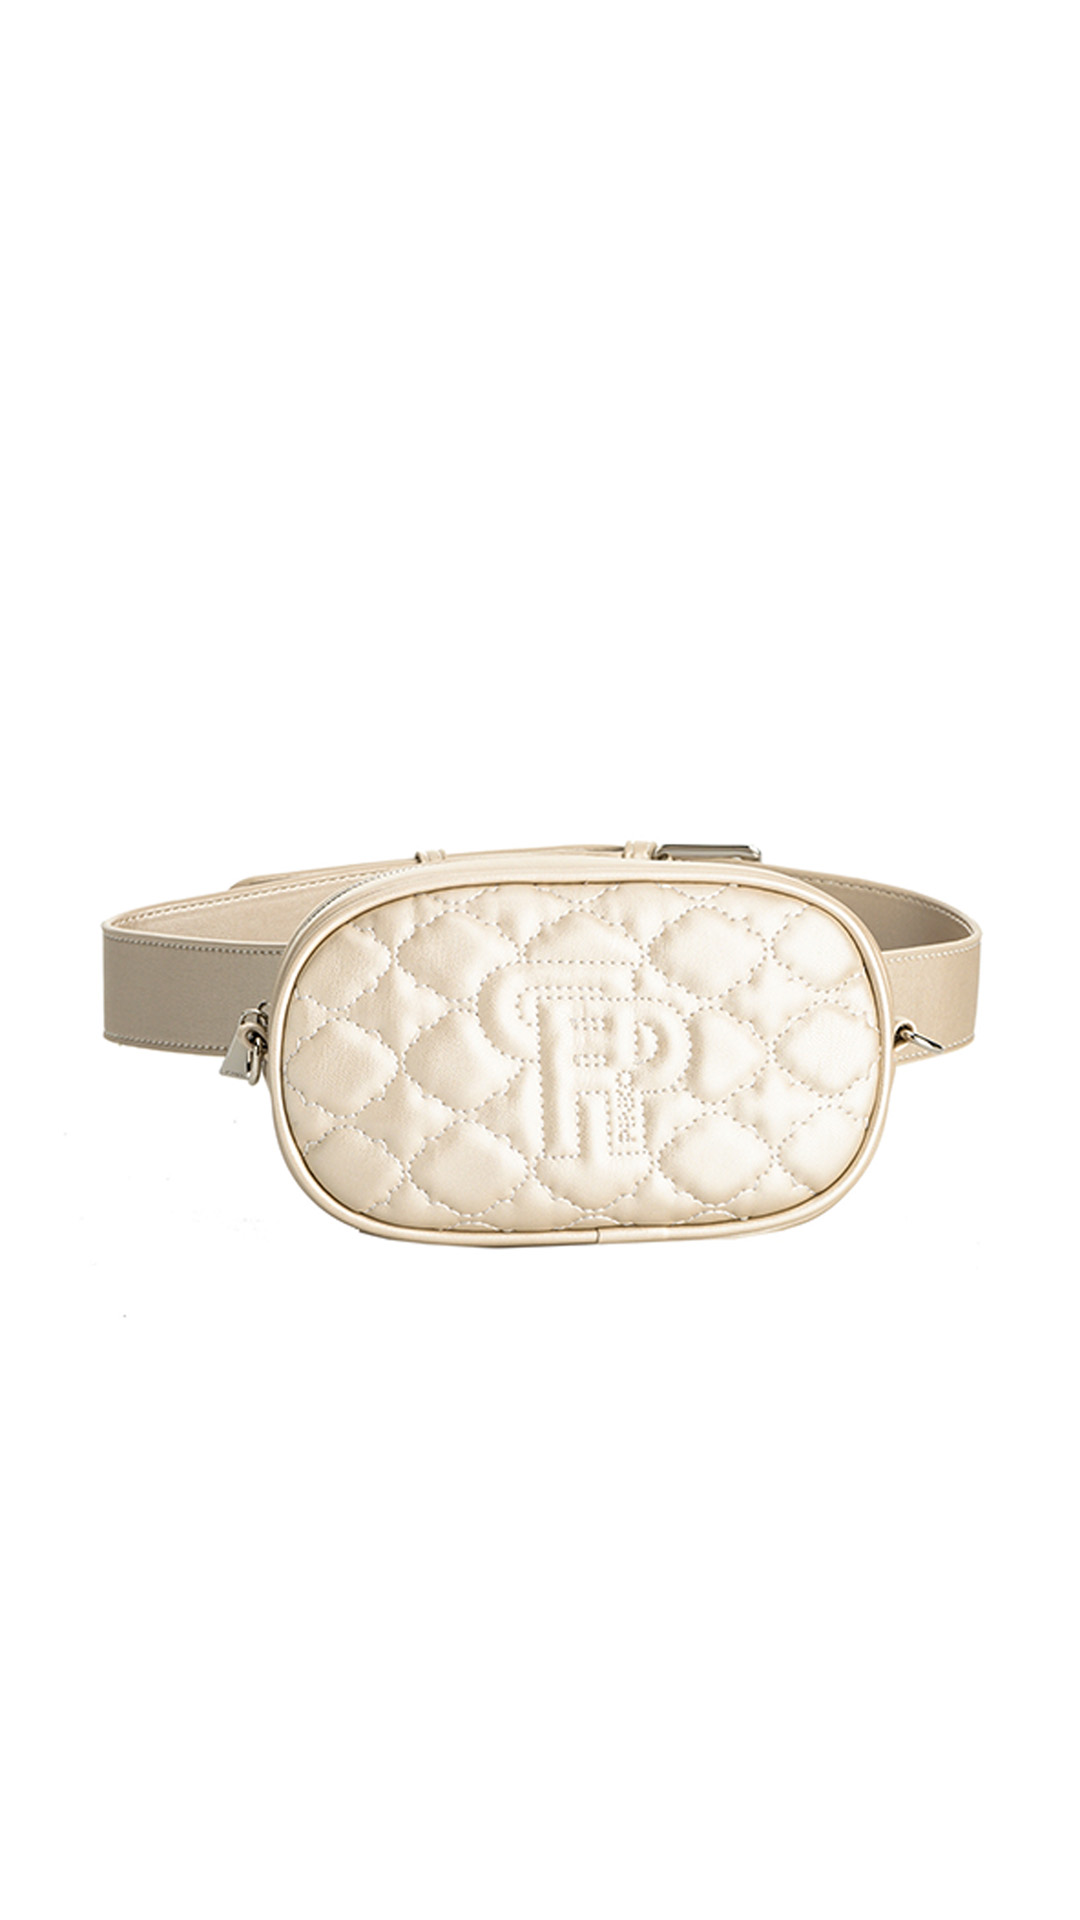 PINKO belt bag